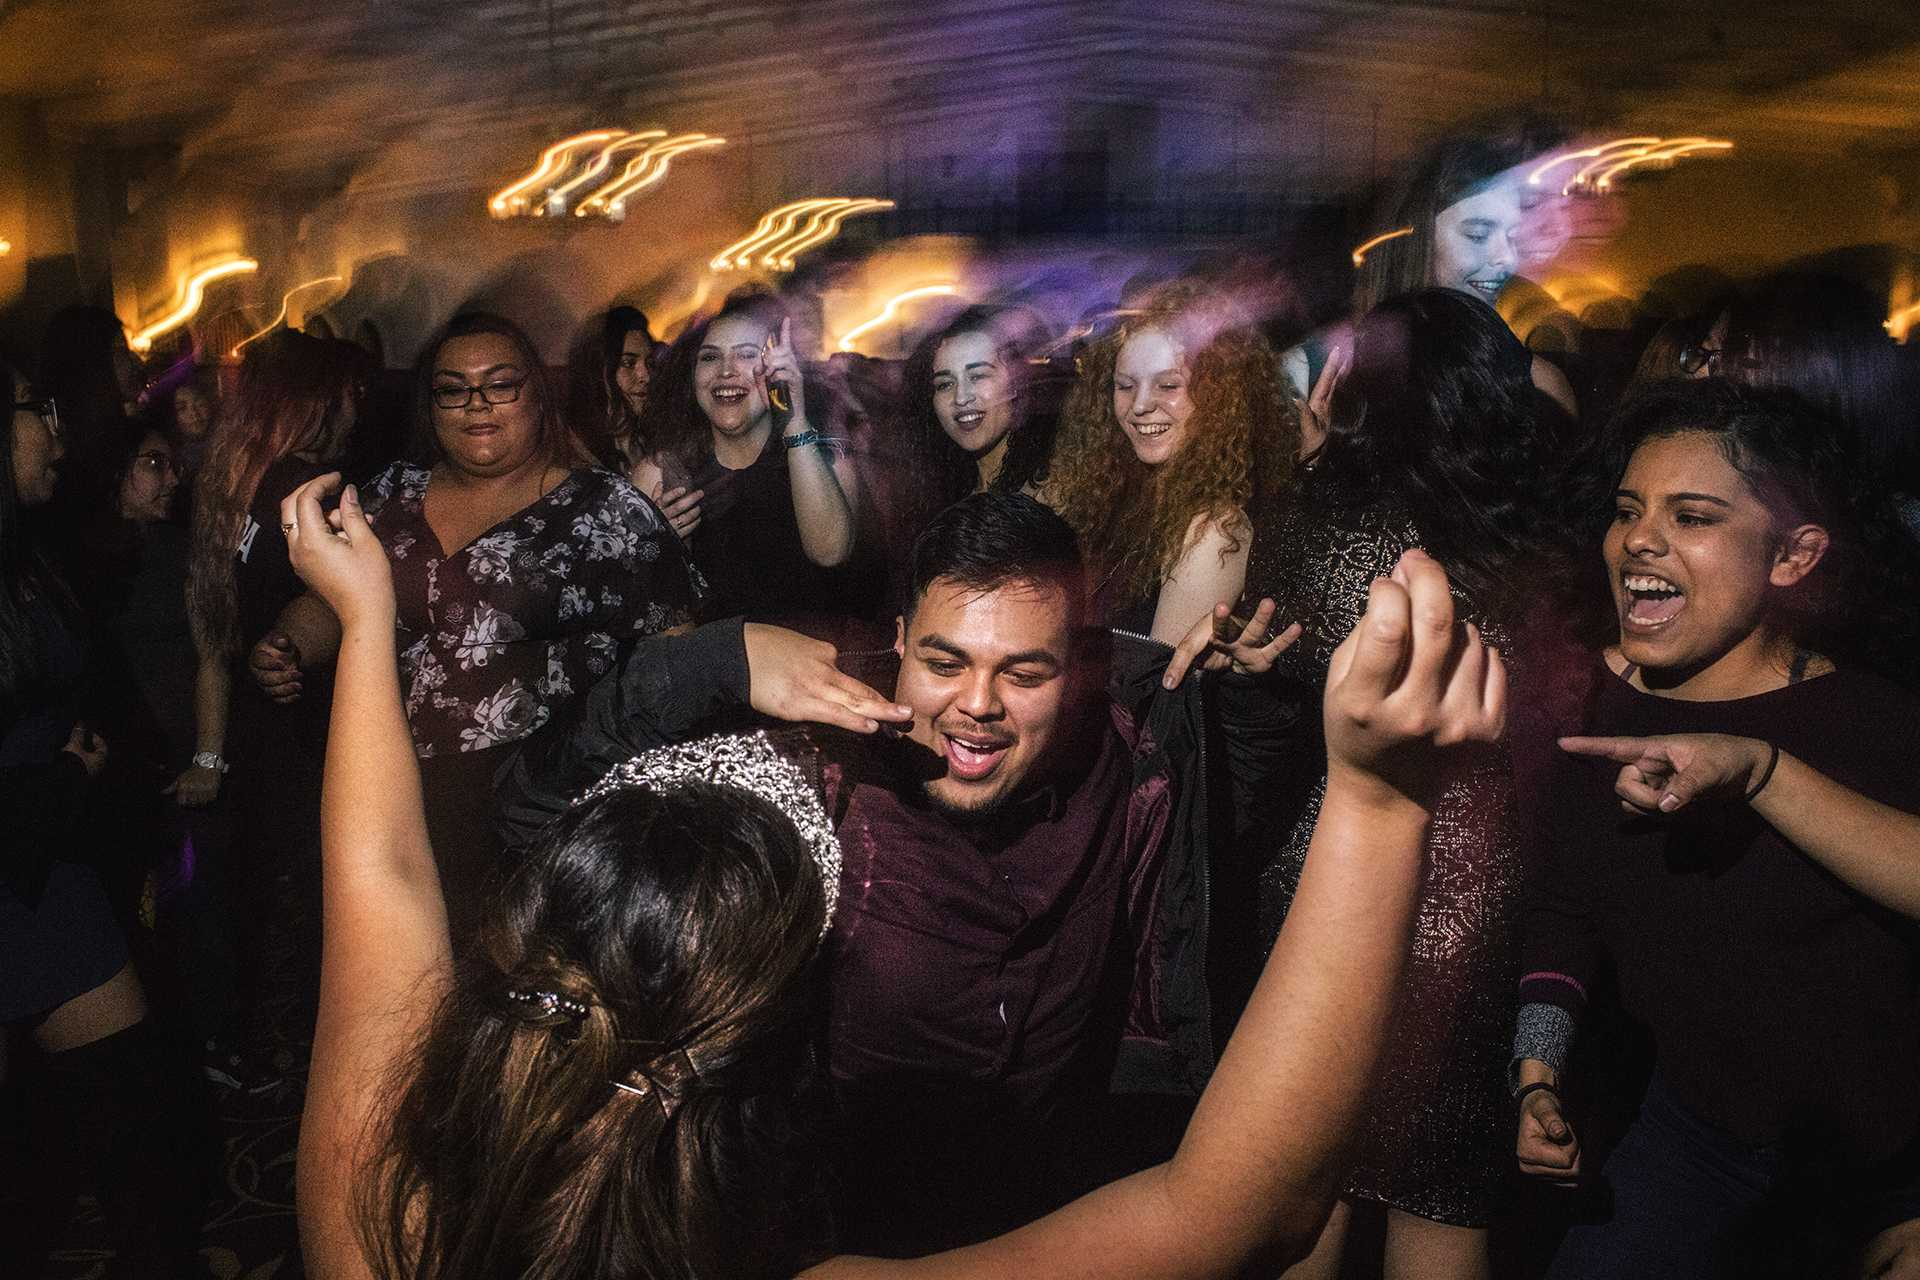 UI Sophomore Mayte Gomez-Cruz dances with the crowd during a mock Quinceañera celebration at the IMU on Thursday, Mar. 22nd, 2018. A Quinceañera is a coming of age ceremony in hispanic communities to mark a woman's 15th birthday. (James Year)